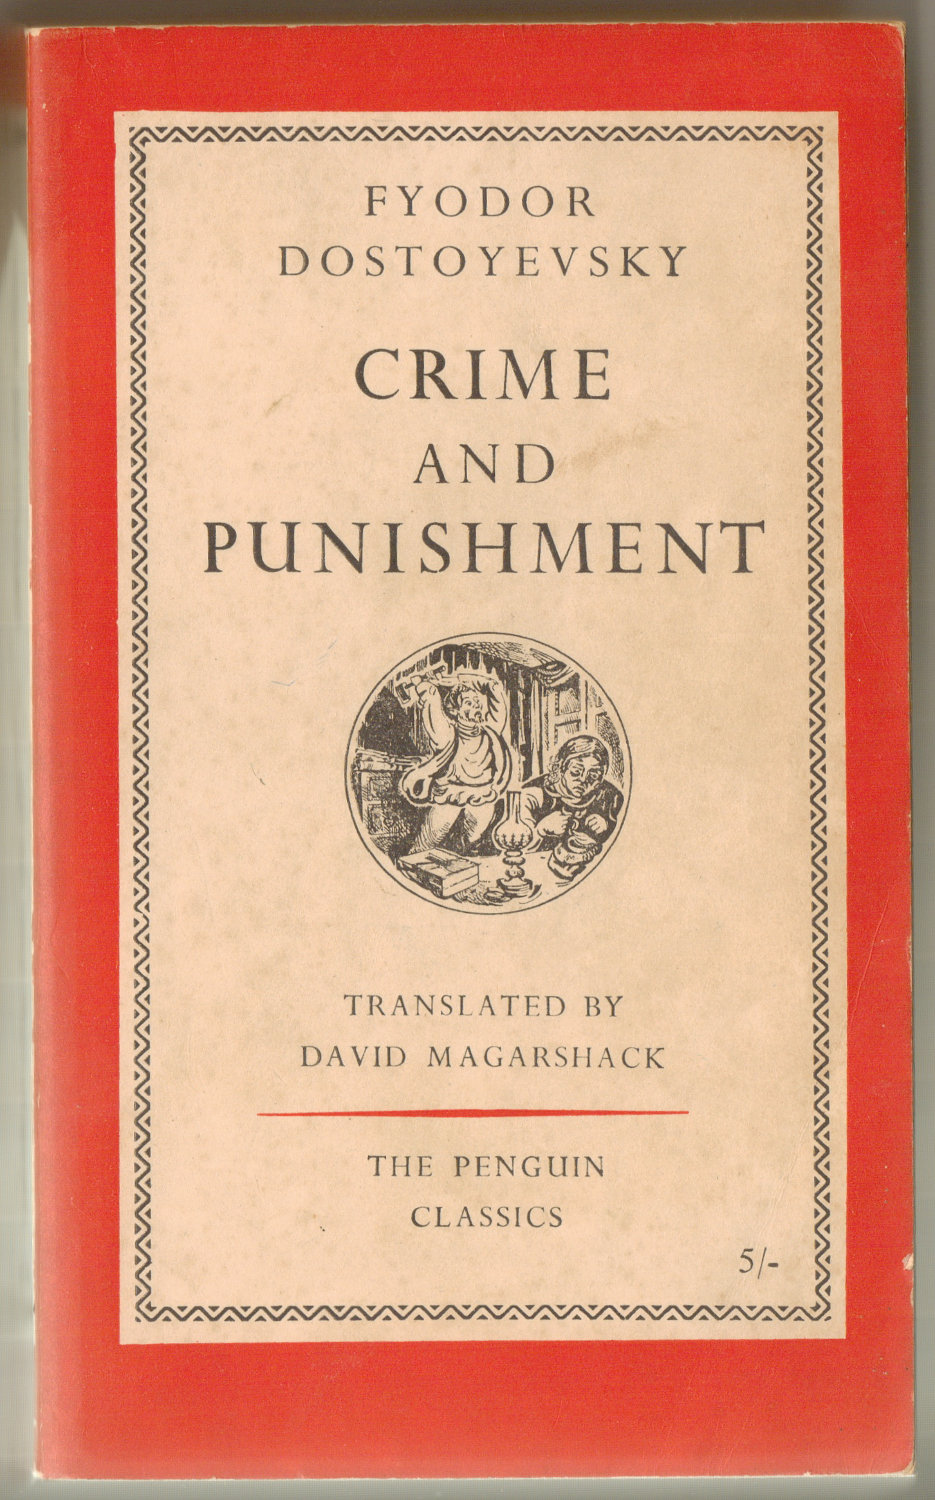 crime and punishment For a given crime, beheading or exile might be the punishment for a honestior, but a humilior would die by burning, beasts, or crucifixion or become a penal slave to be worked to death in the mines or quarries.